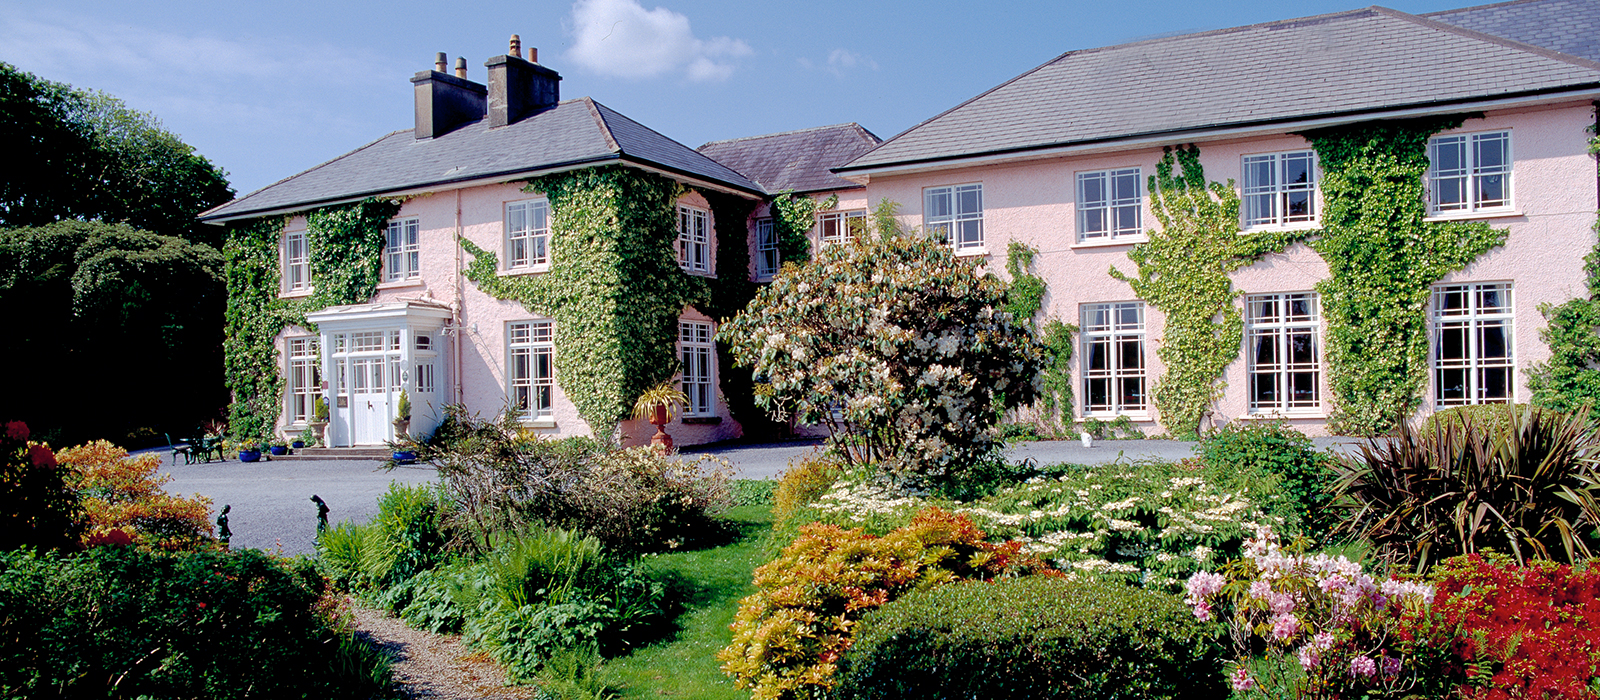 Rosleague Manor Four Star Country House Hotel Restaurant